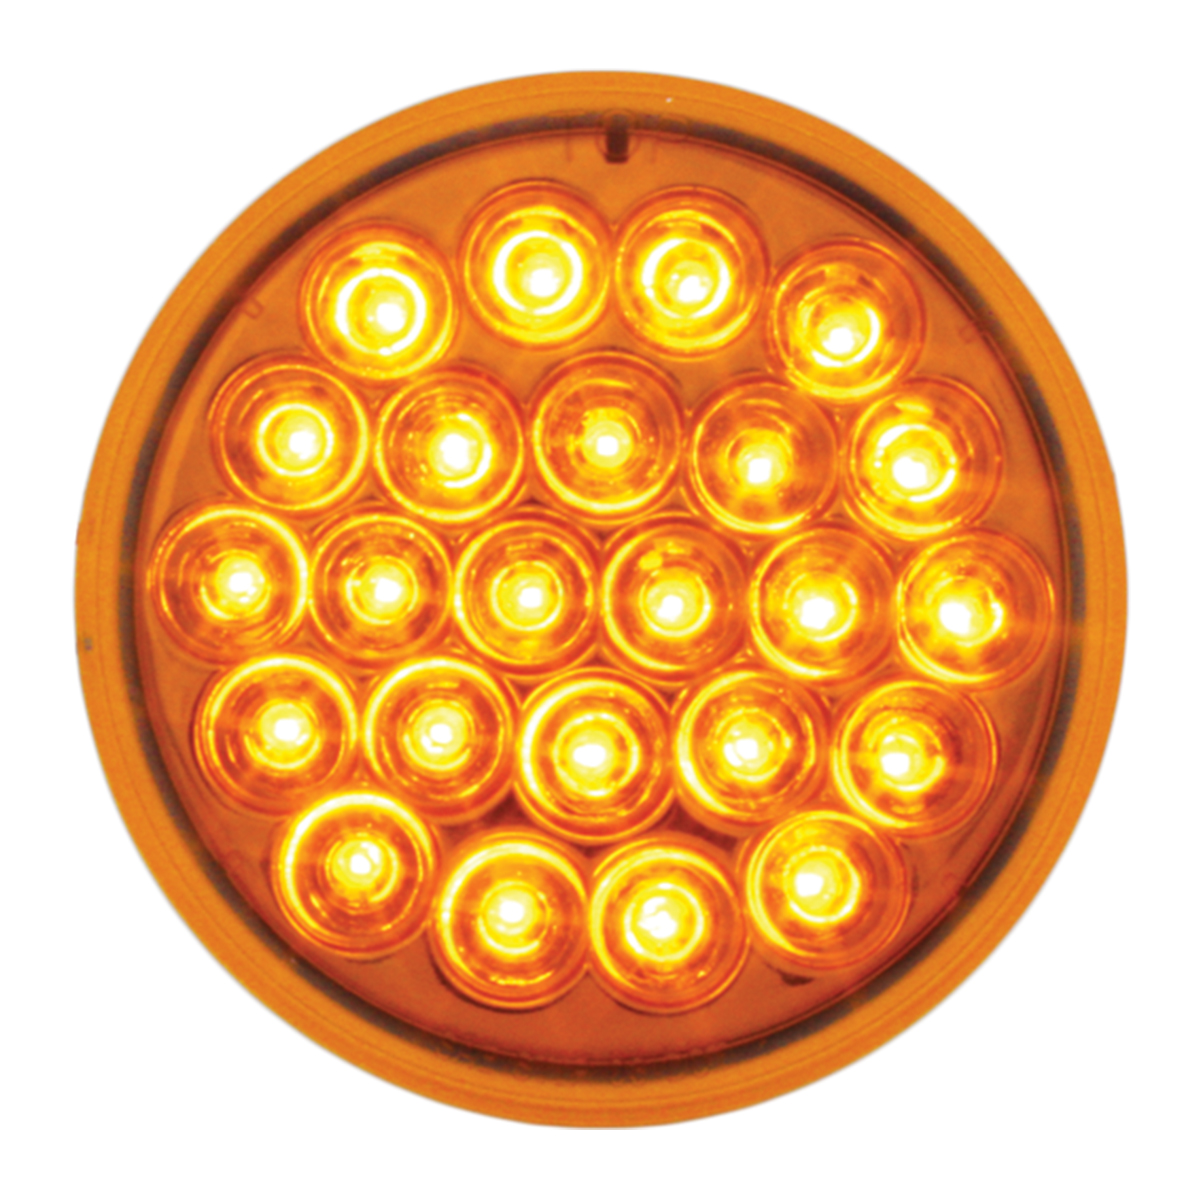 "#78270 4"" Round Pearl LED Flat Amber/Amber Light"